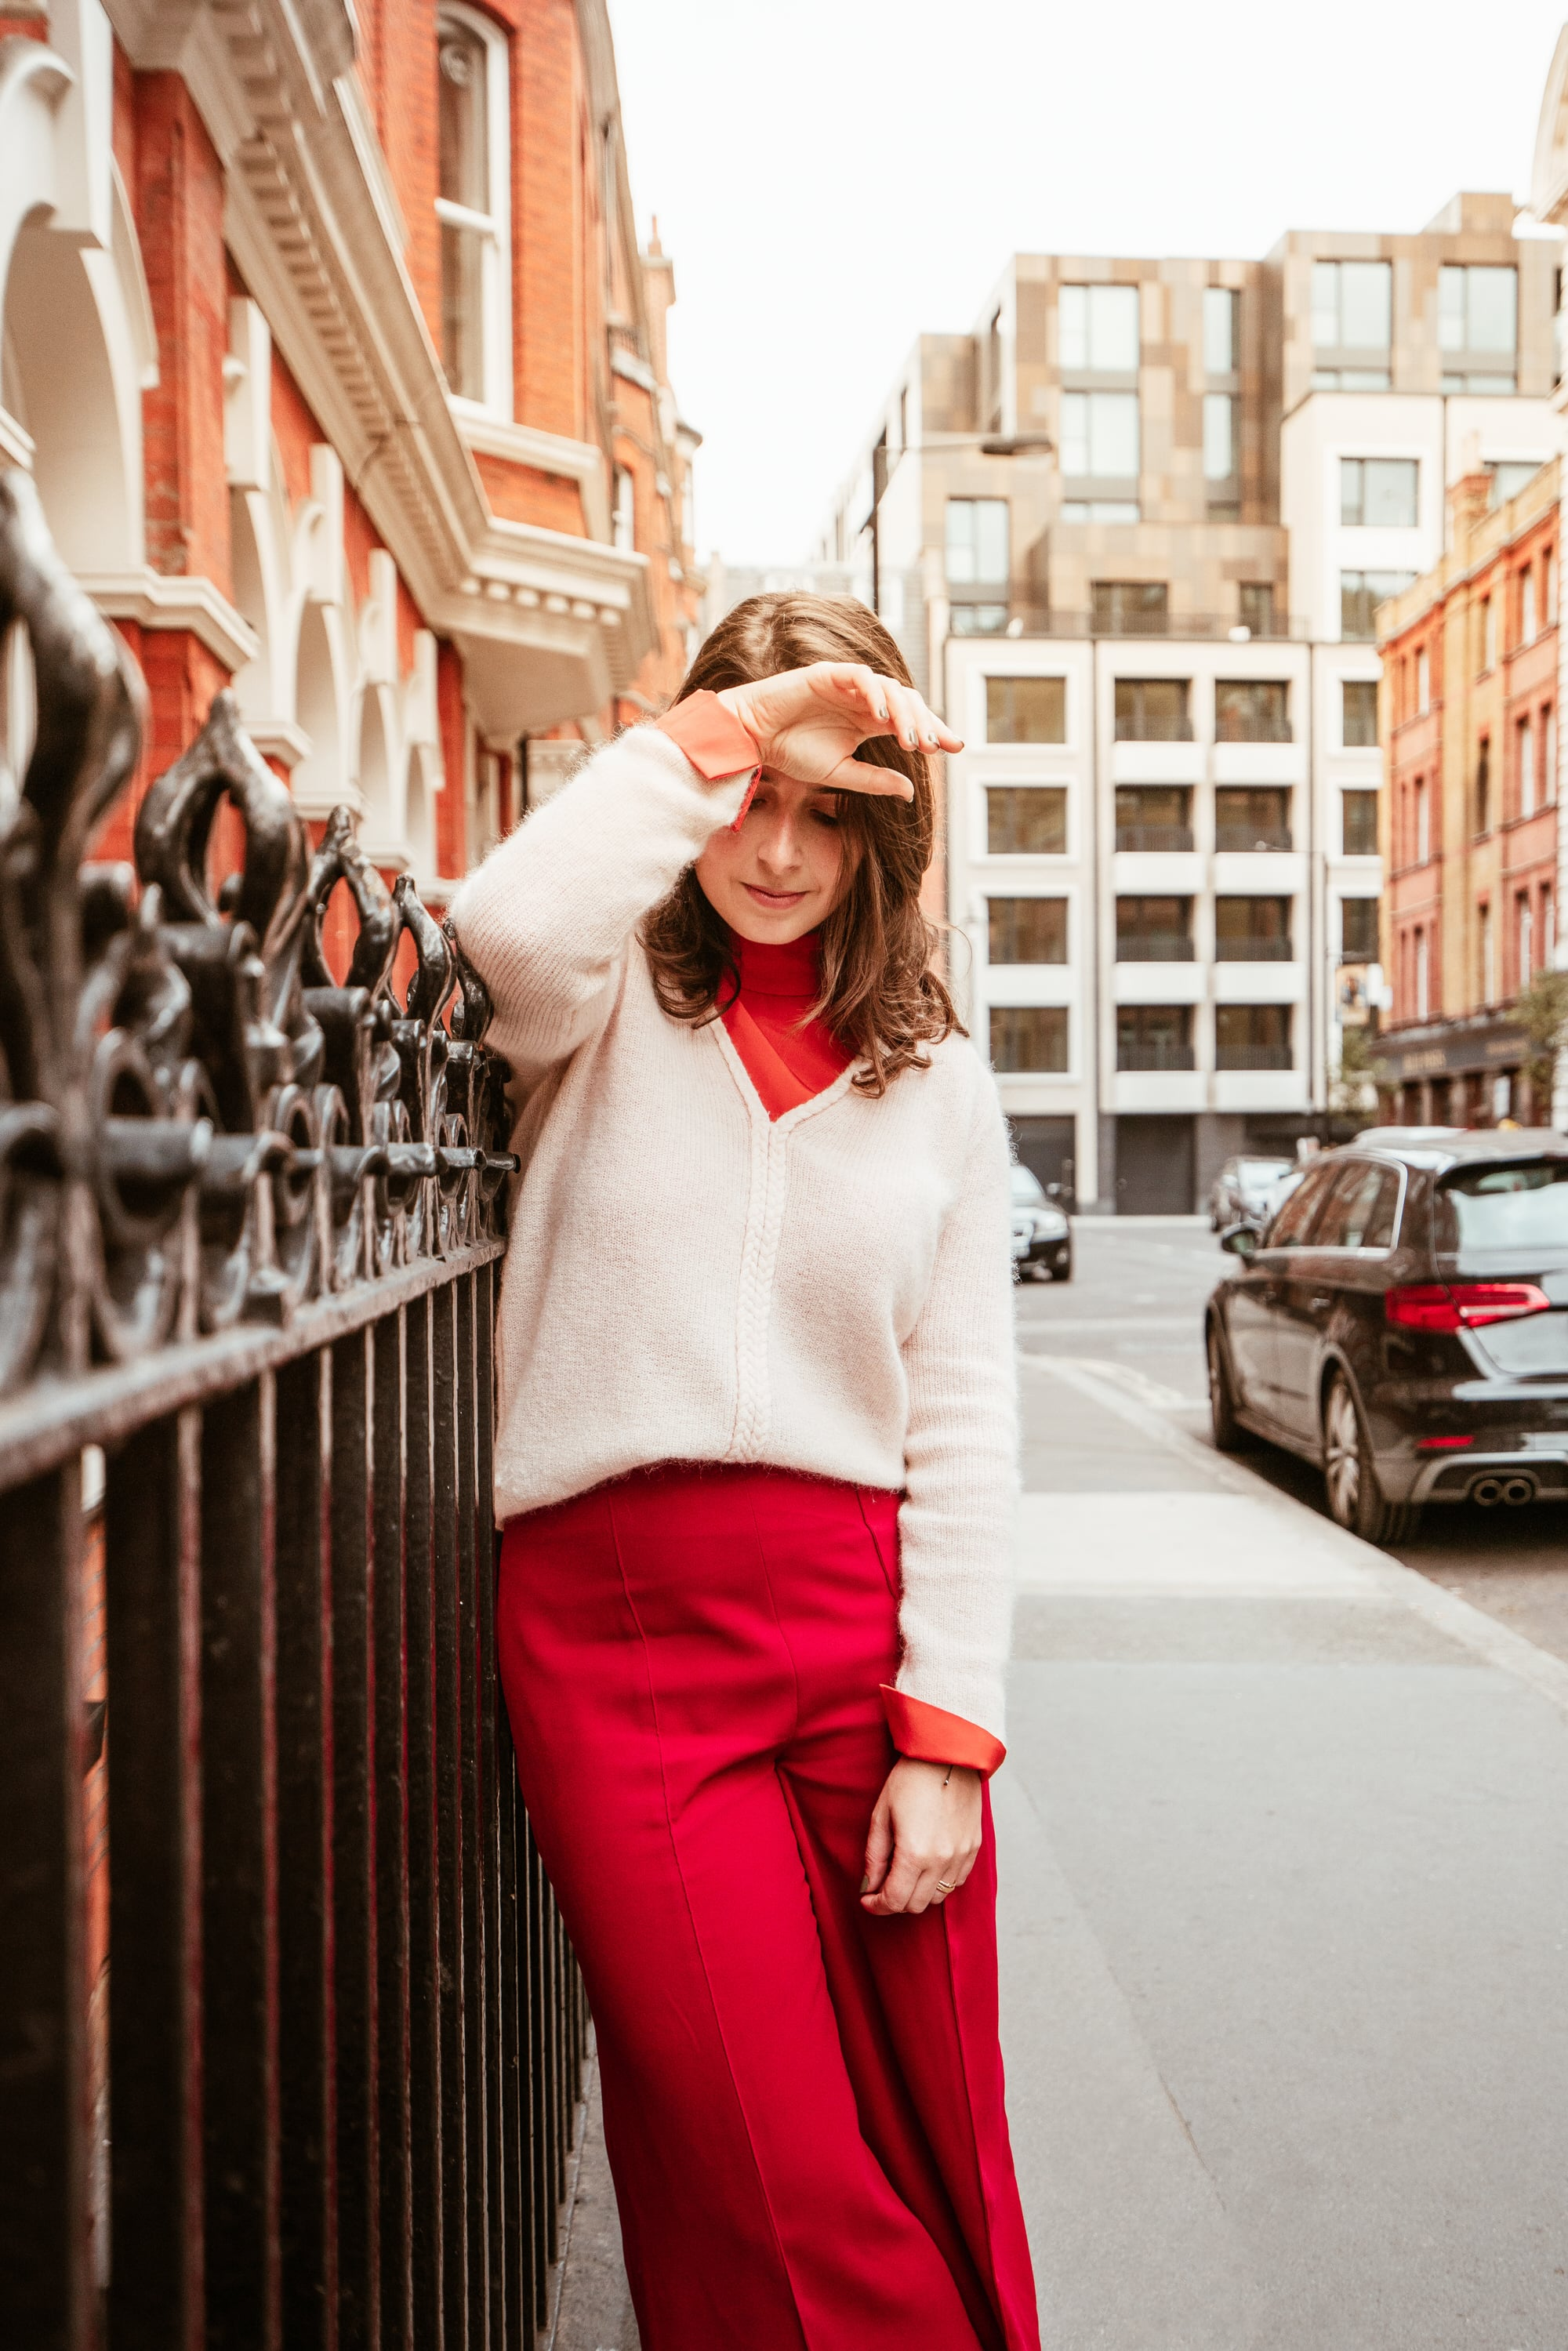 Arara Pintada shares three looks to inspire you to wear culottes during the winter